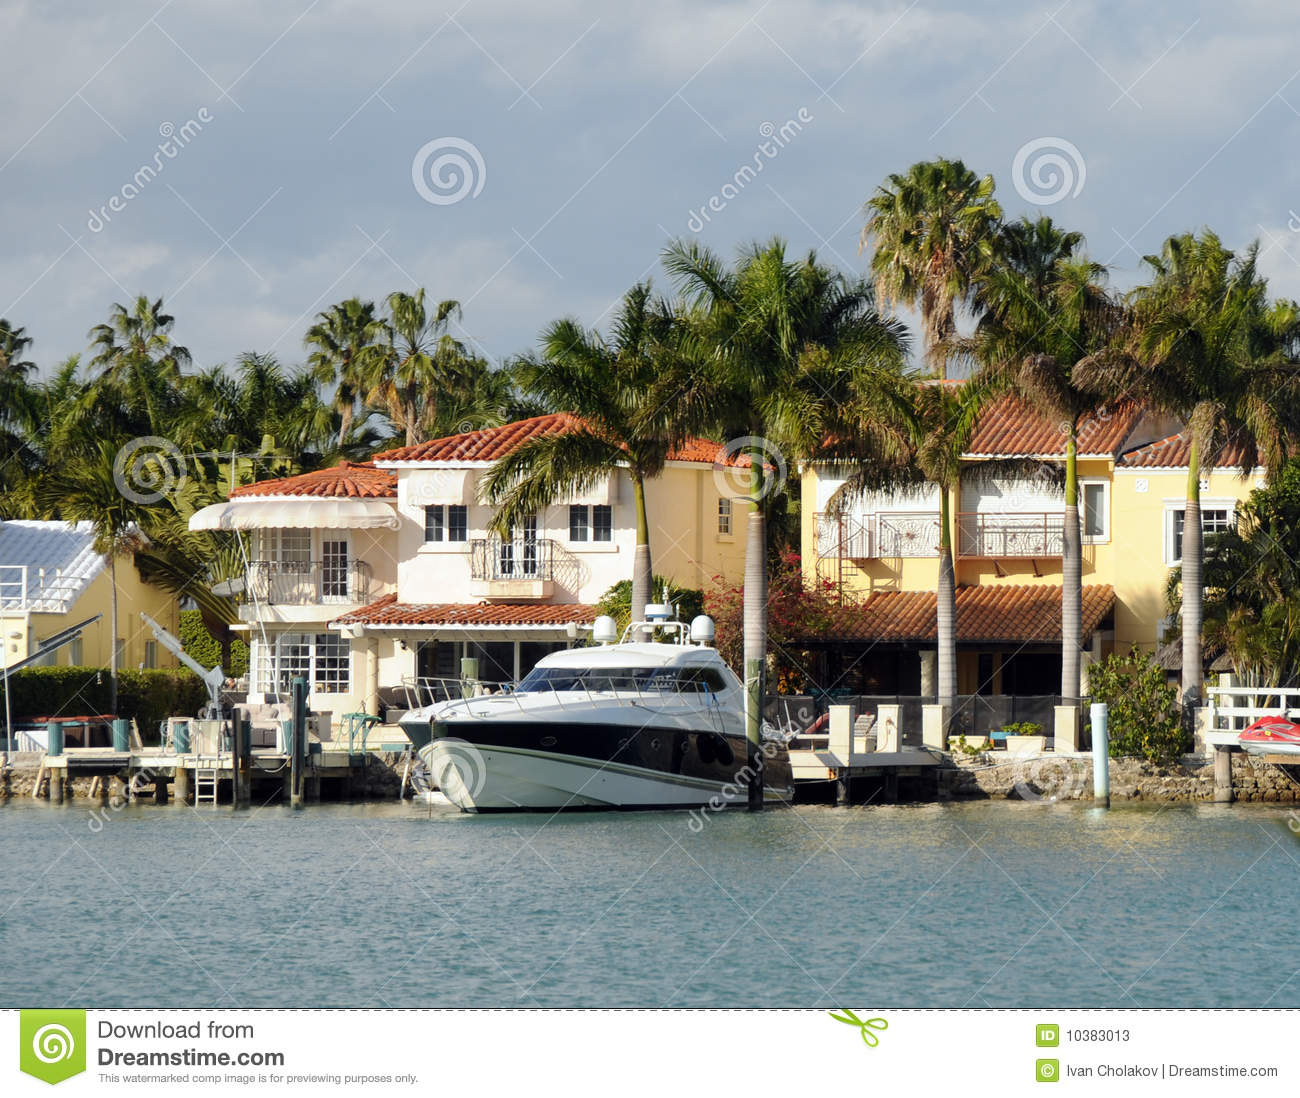 Luxury Waterfront Homes: Luxury Waterfront Home Stock Photos